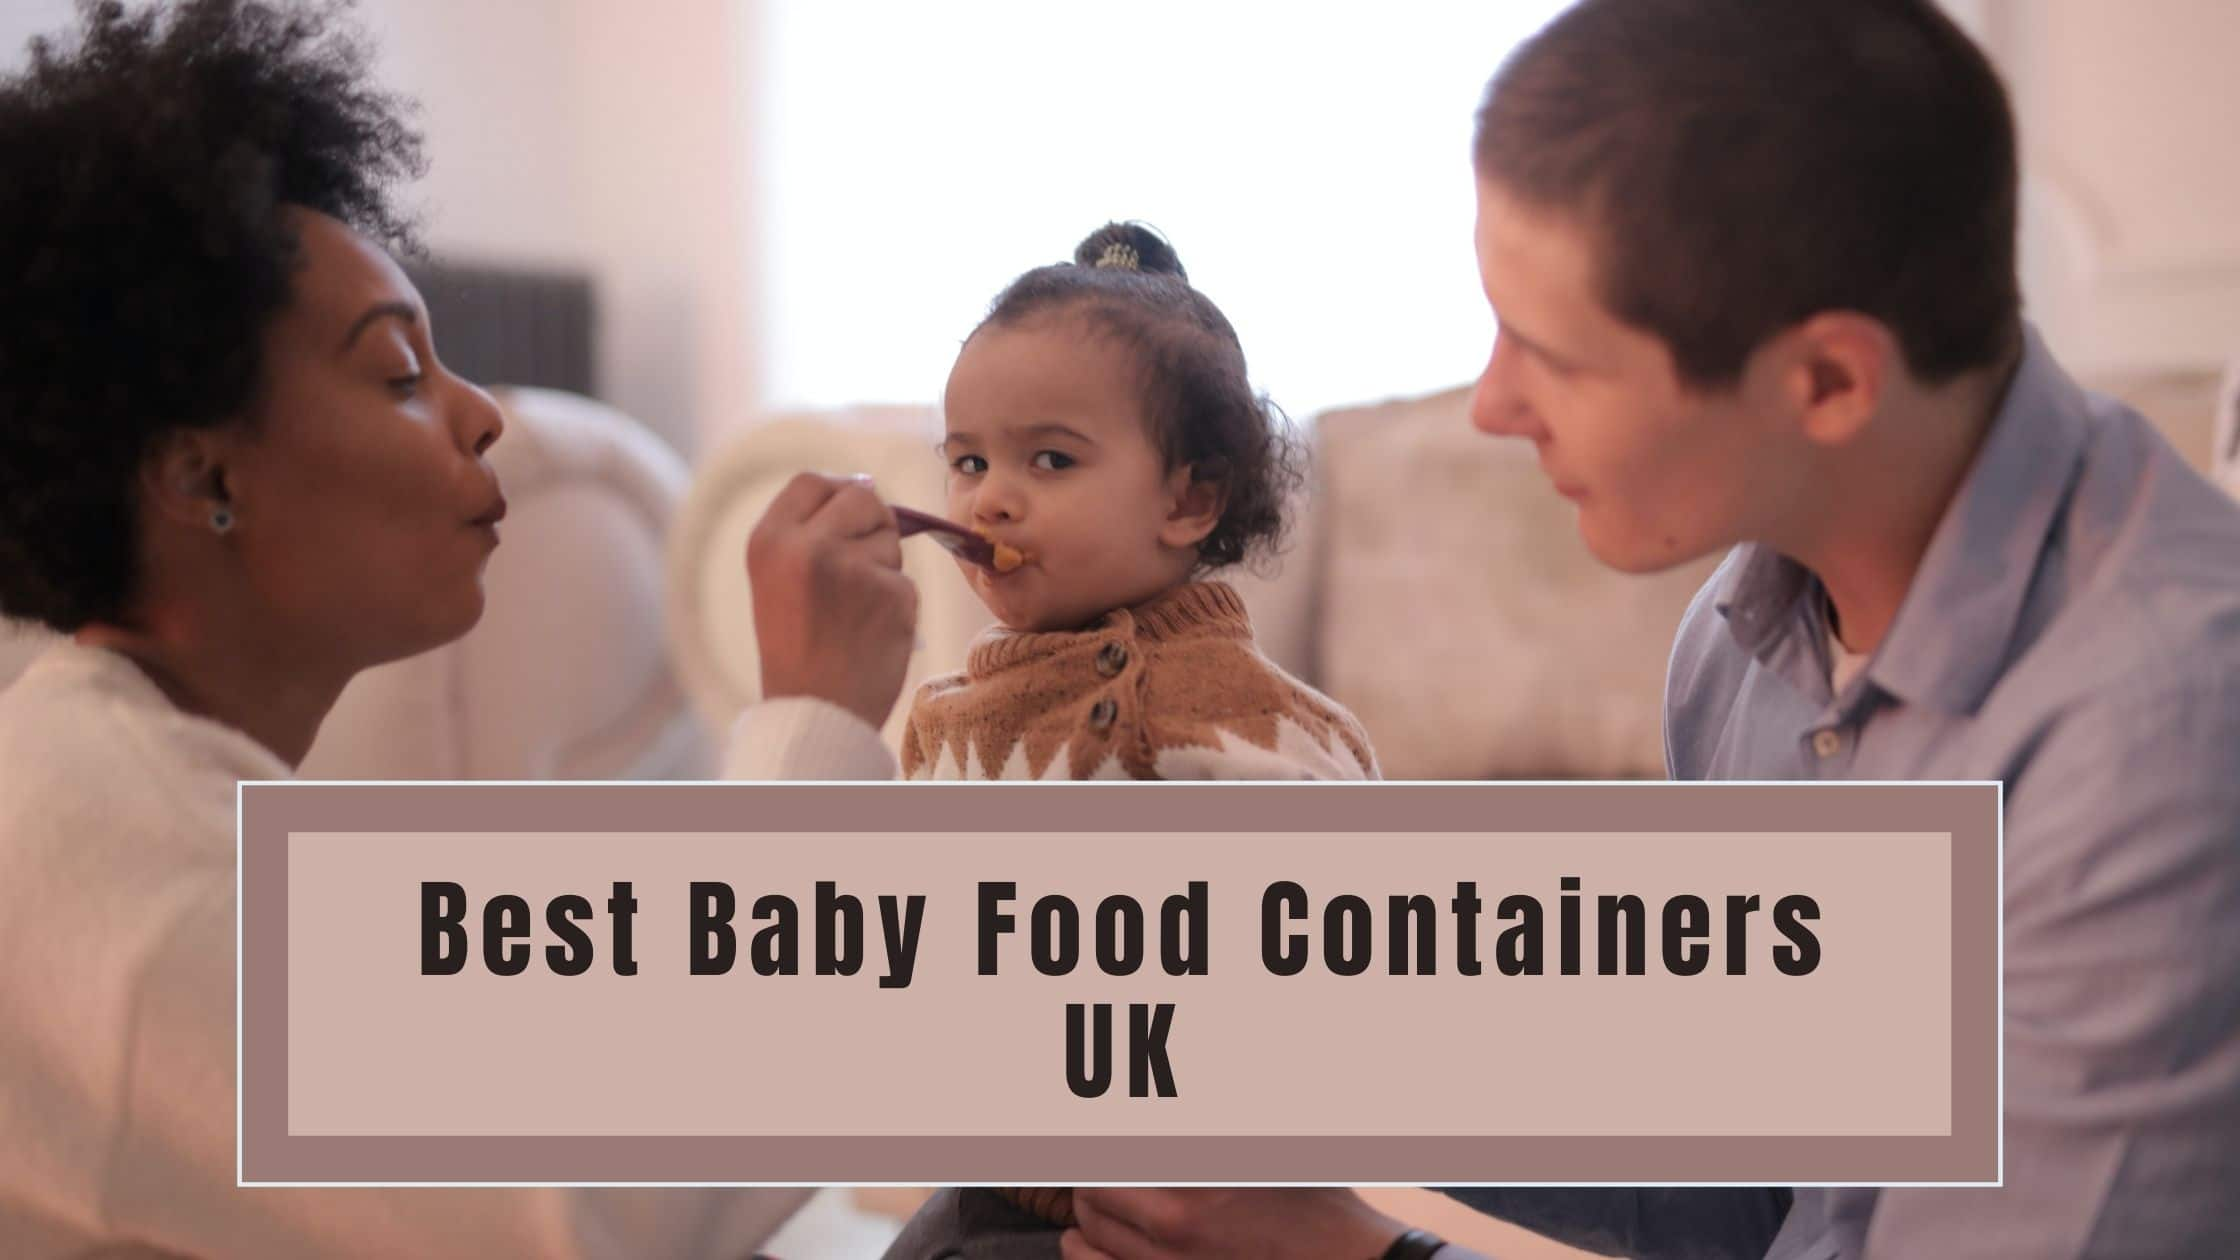 Best Baby Food Containers UK